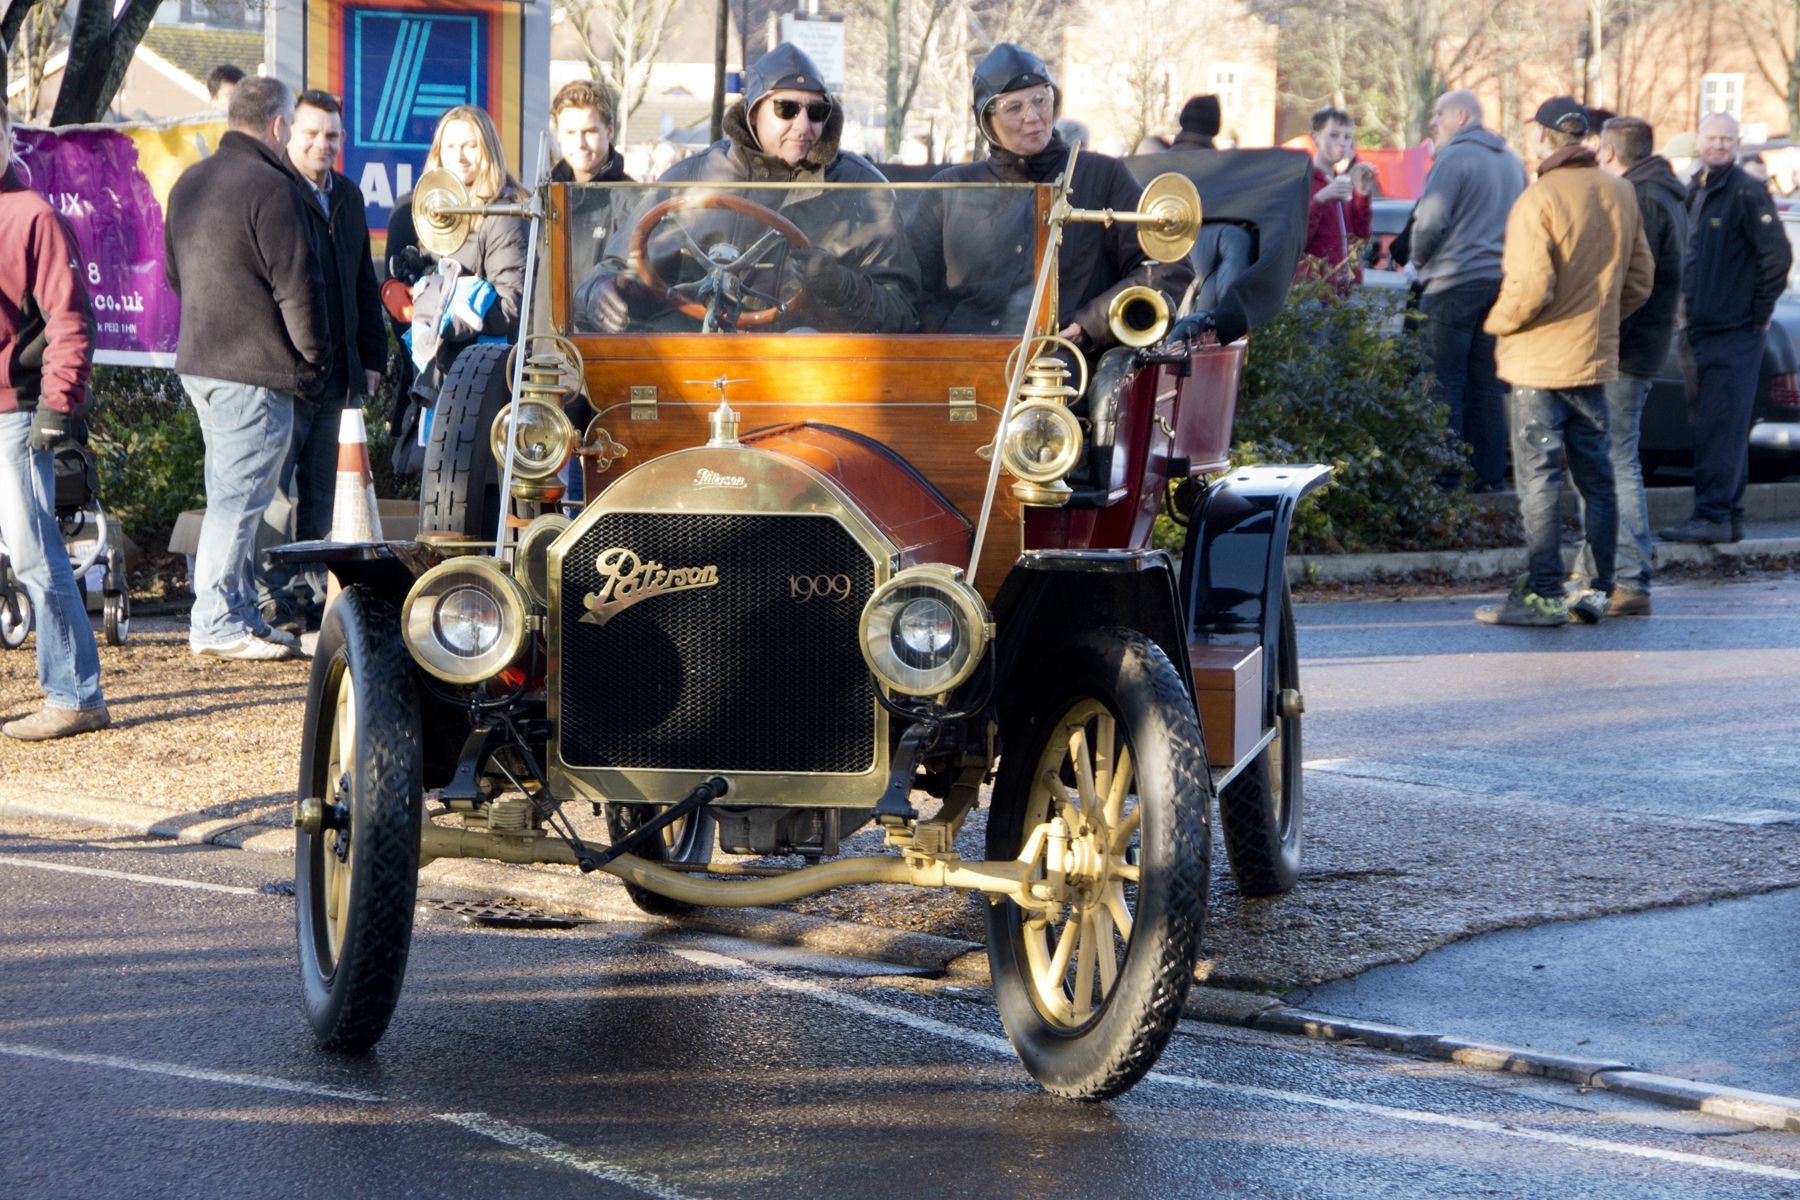 These hardy 1909 Paterson owners brave the cold